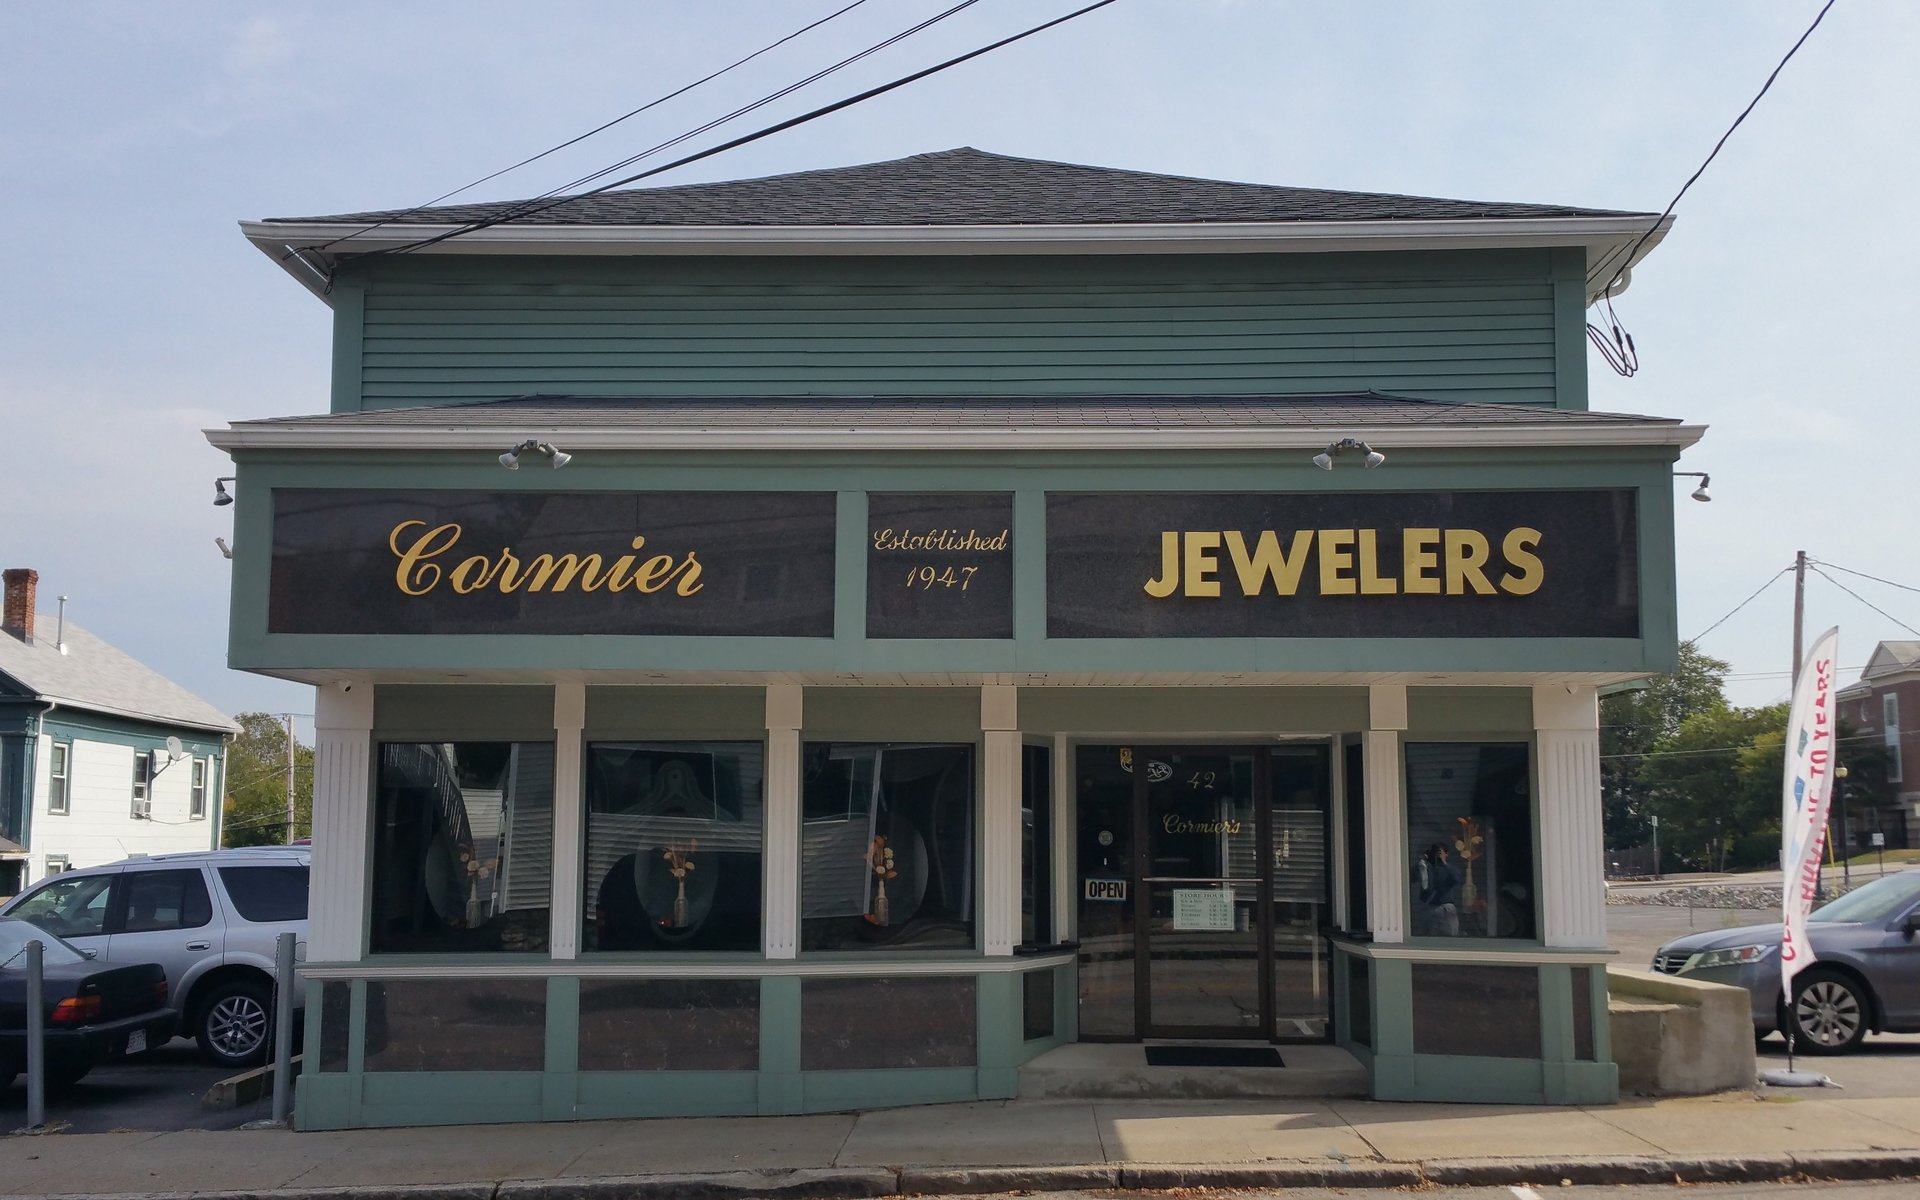 Cormier Jewelers, 42 Central Street in Soutbridge